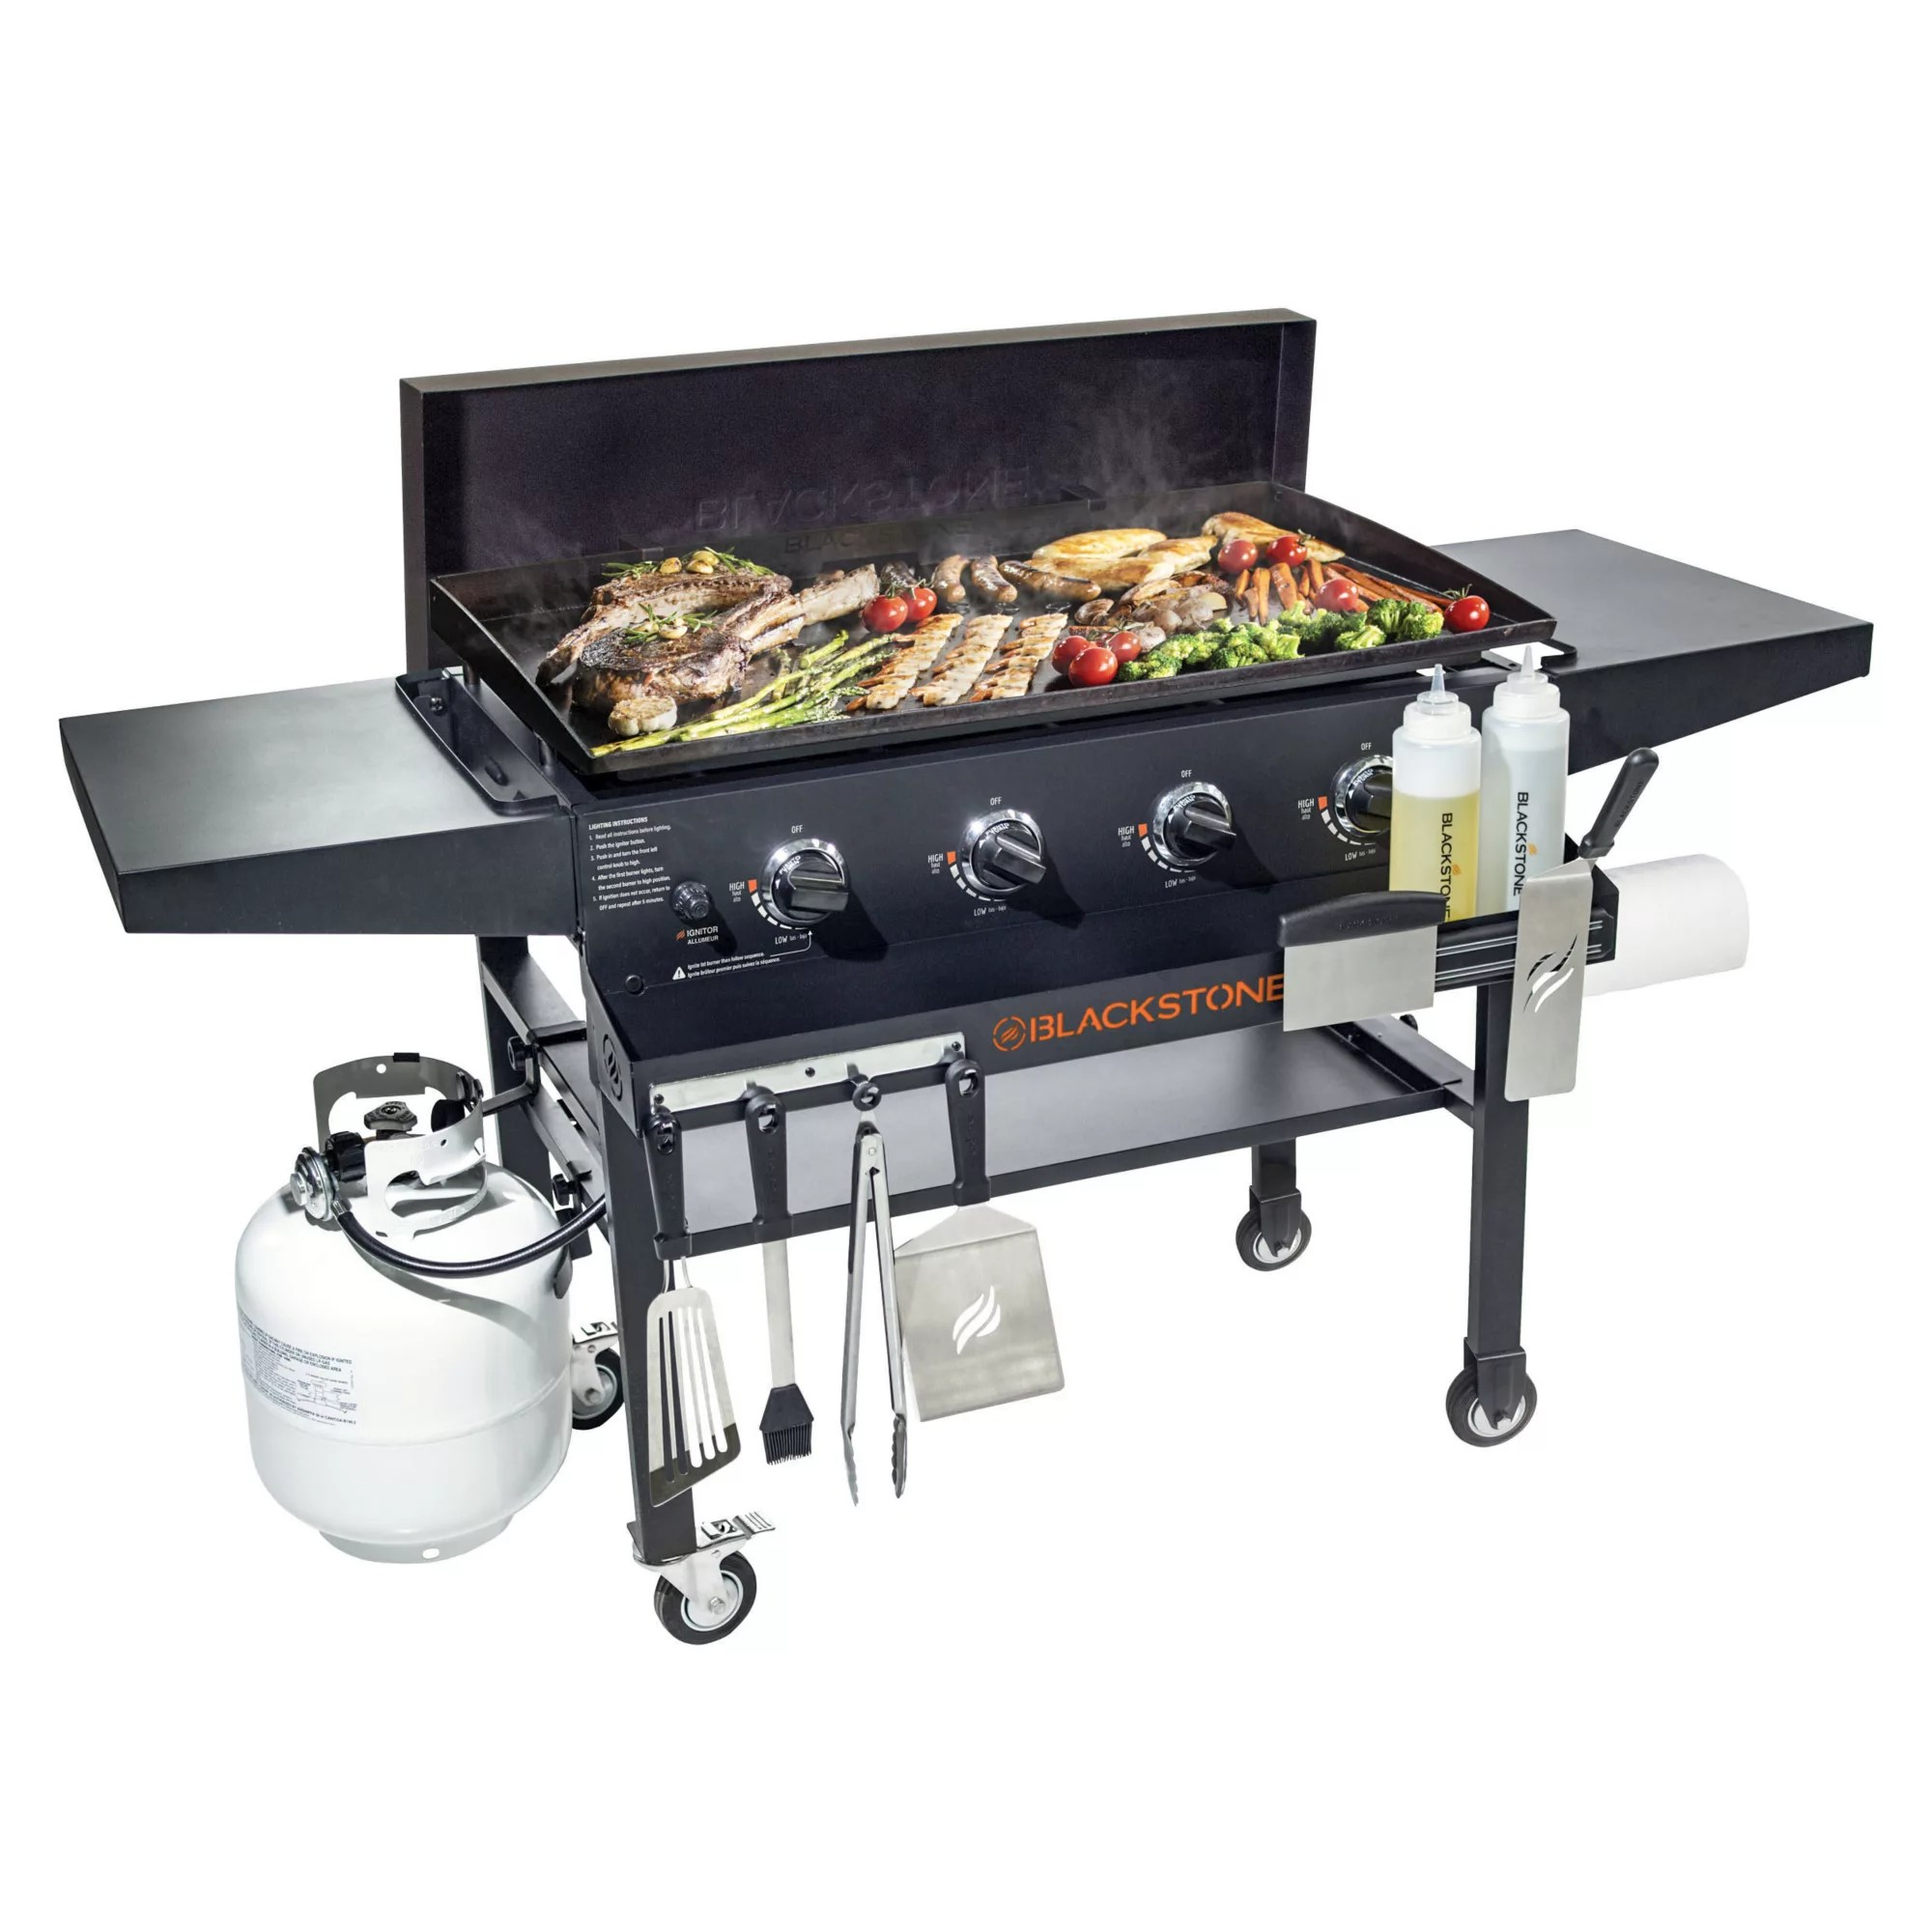 blackstone 36 gas griddle with hard cover and front shelf